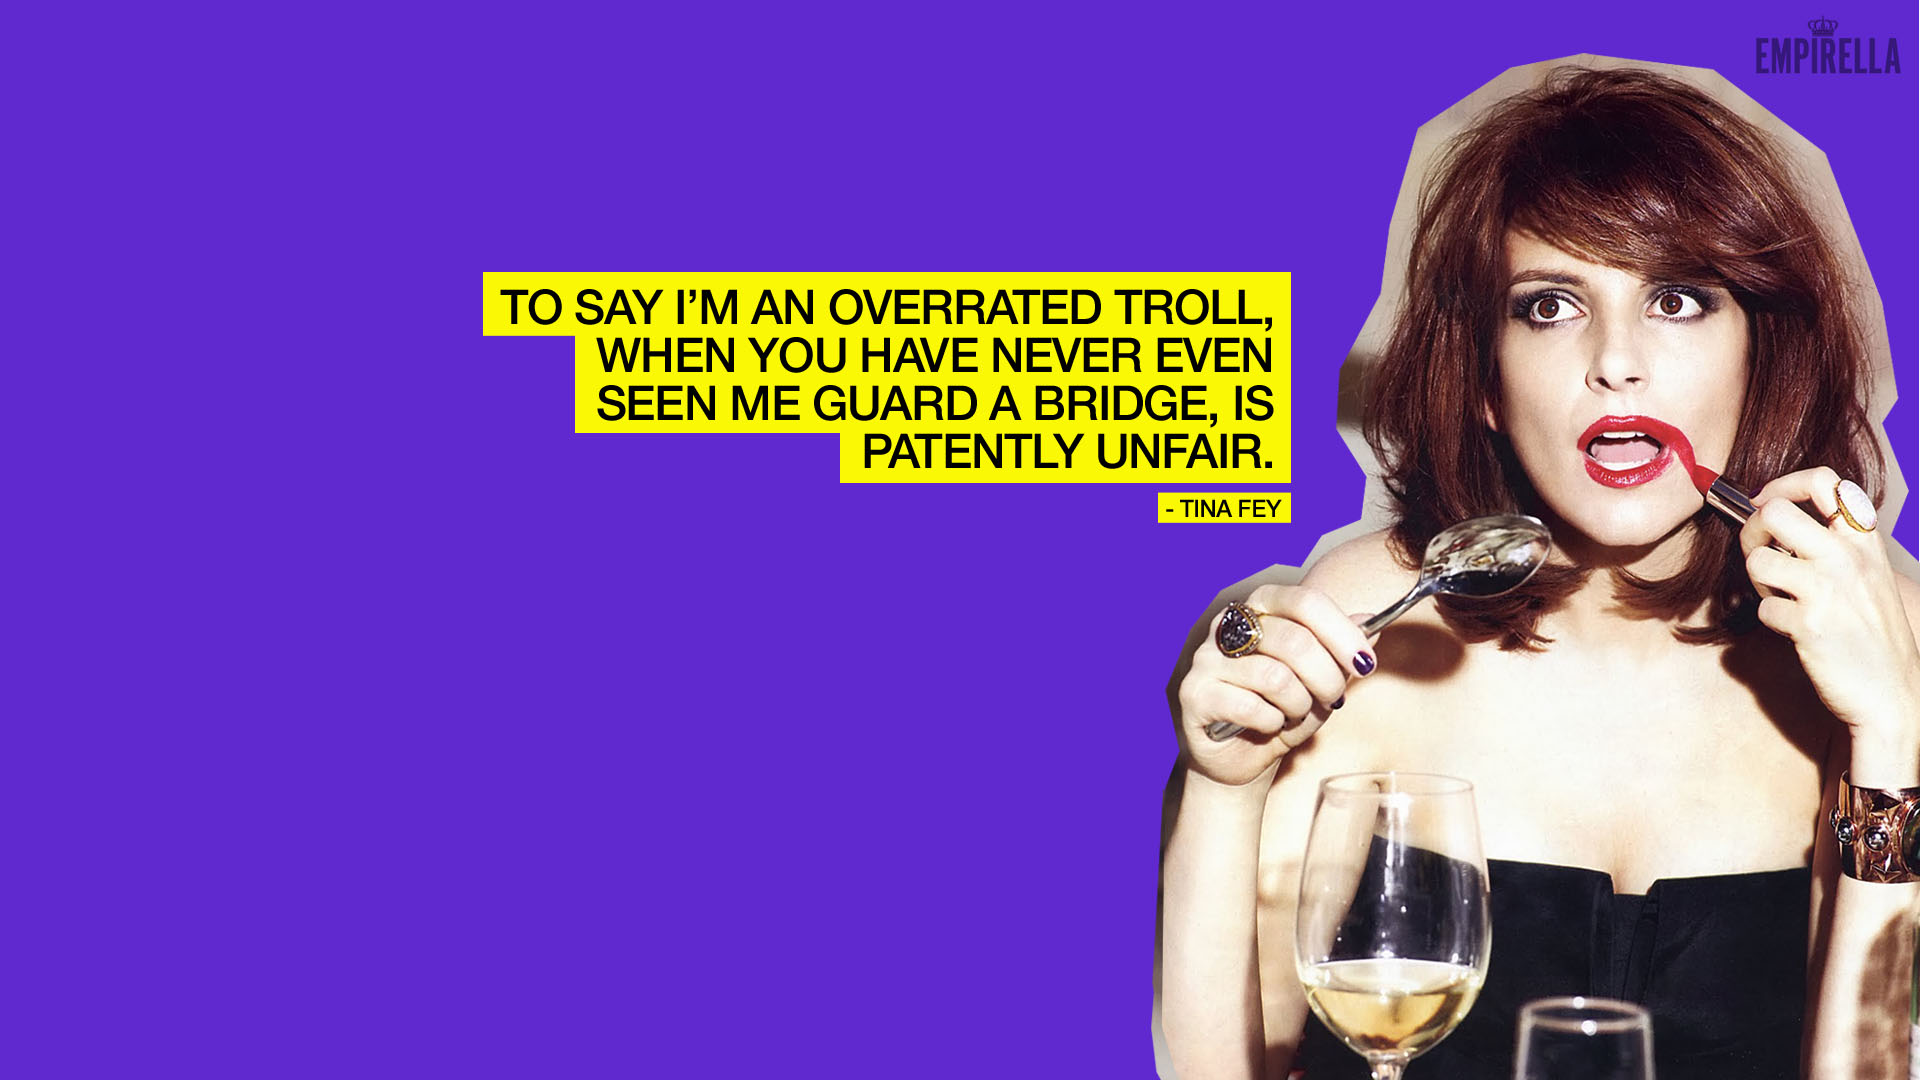 Tina Fey's quote #4